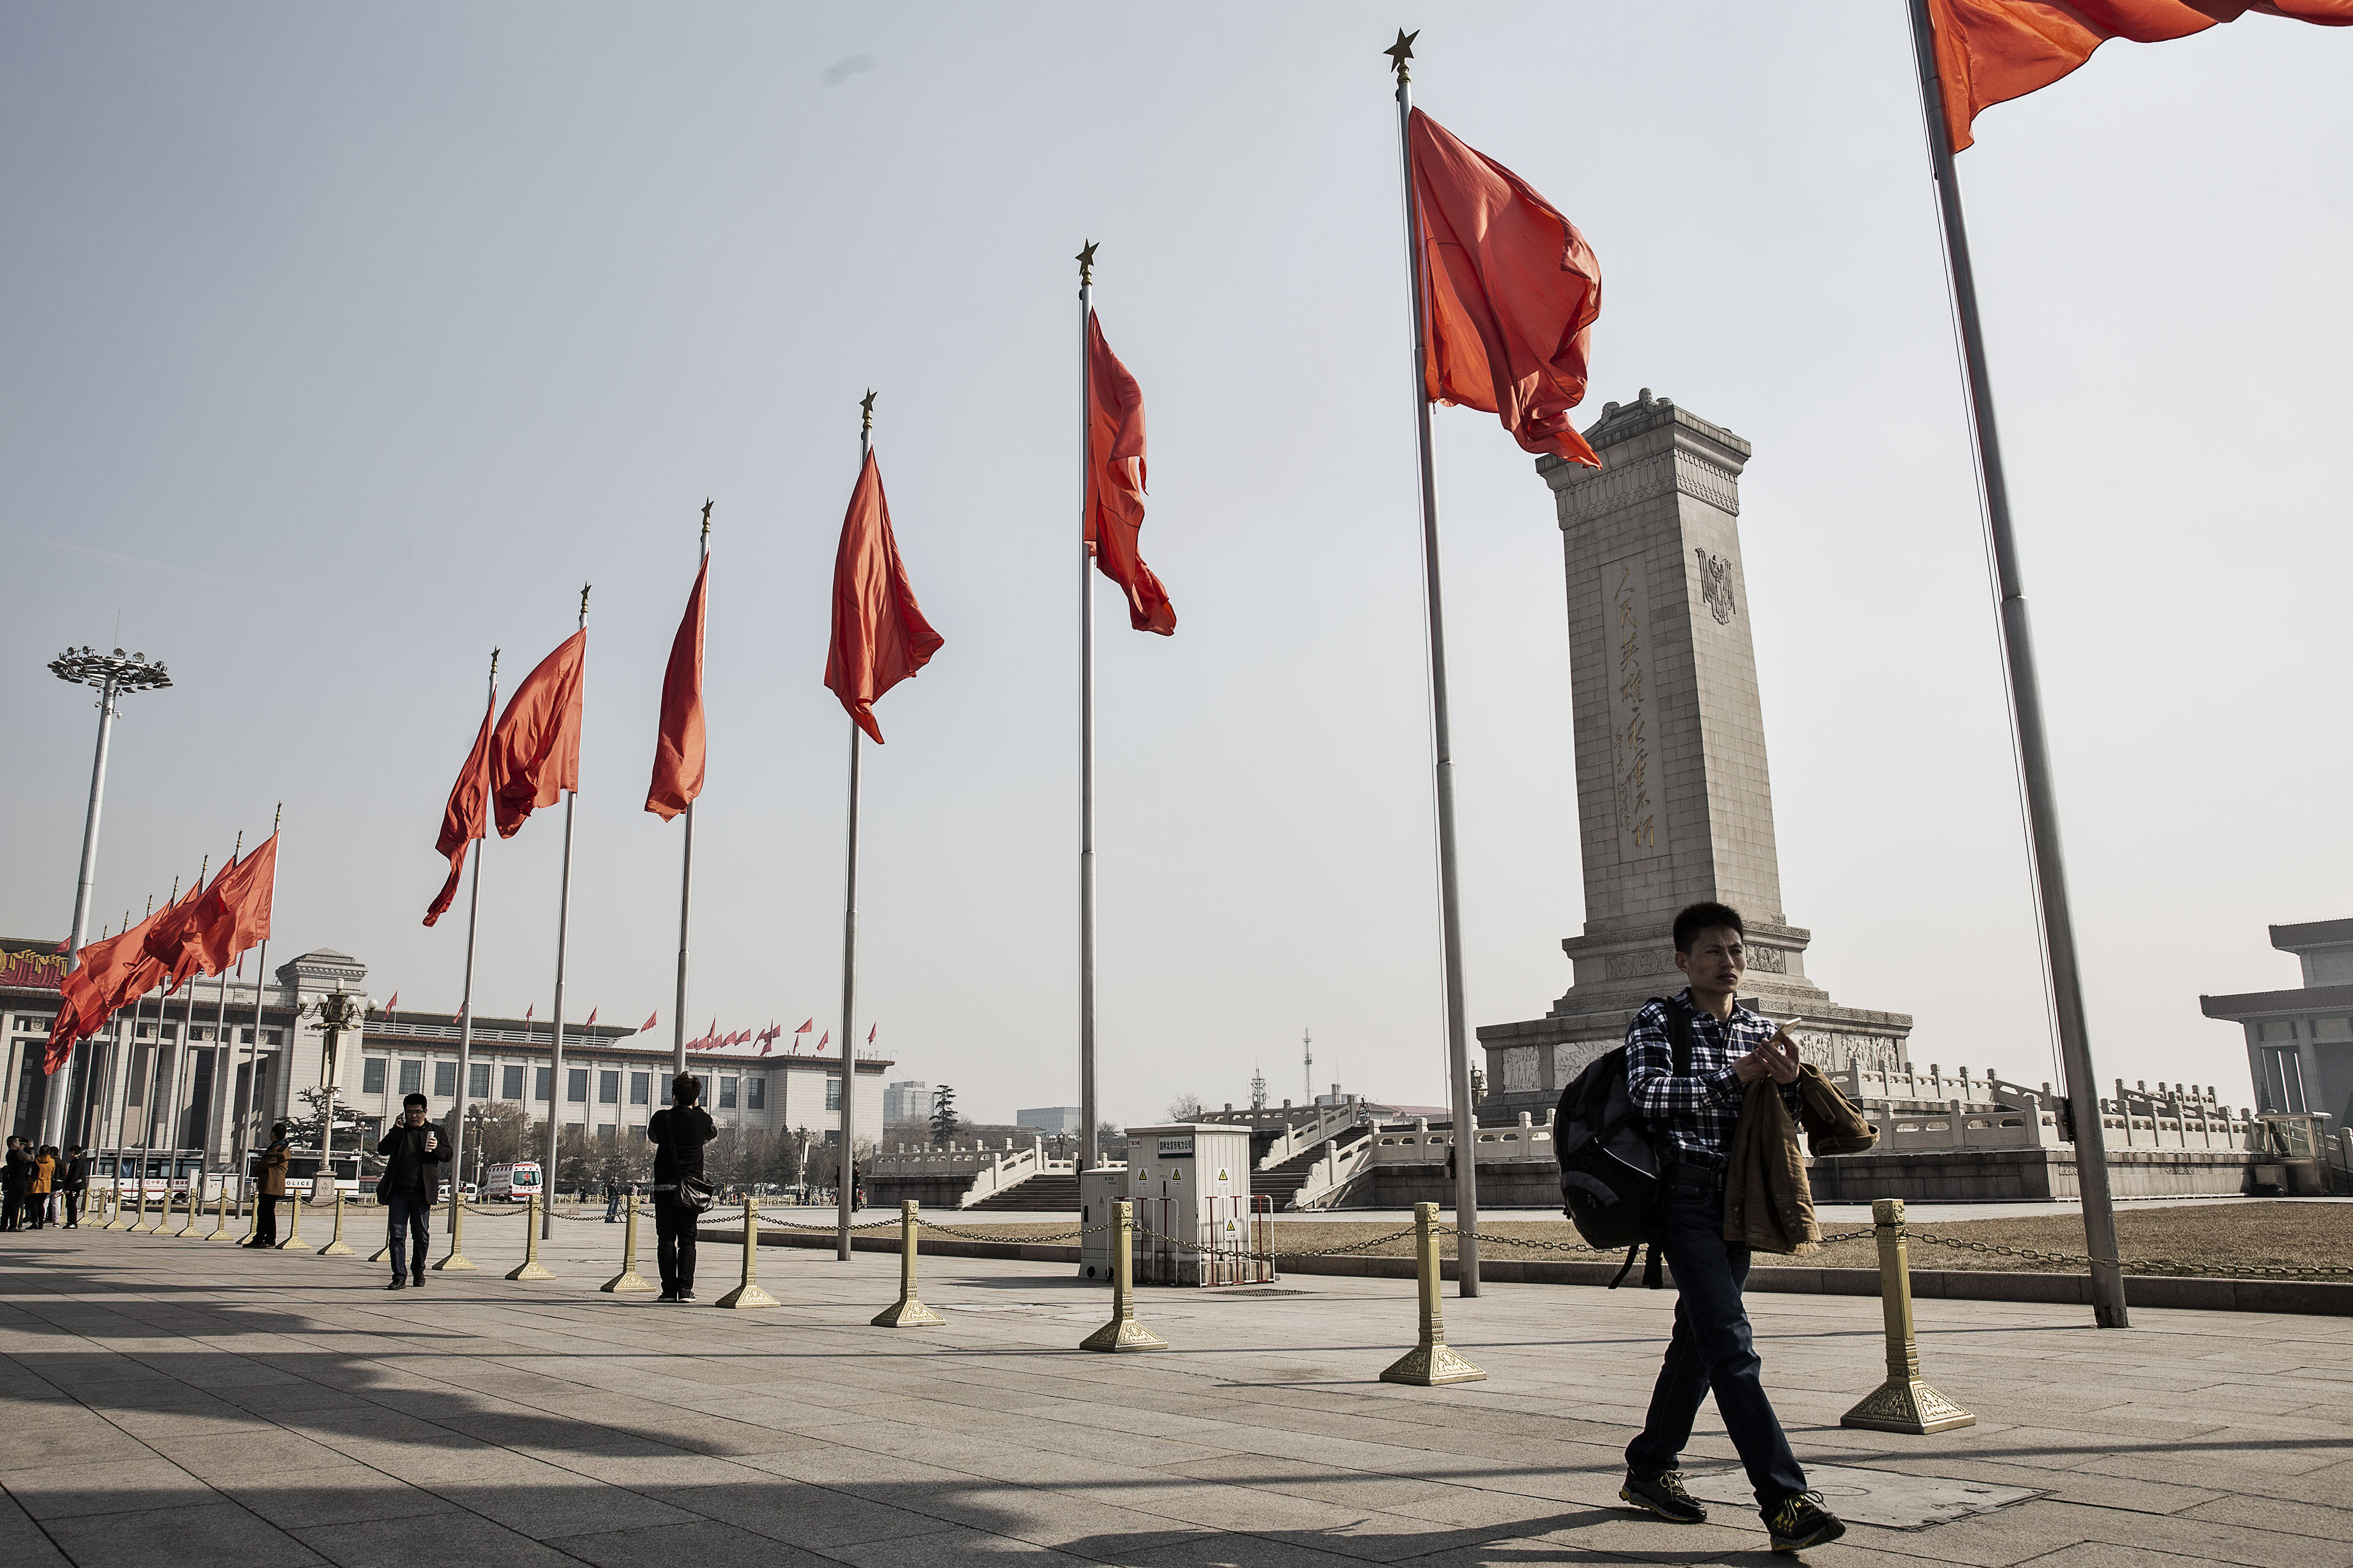 General Economy And Views Of Tiananmen Gate Ahead Of China's National People's Congress